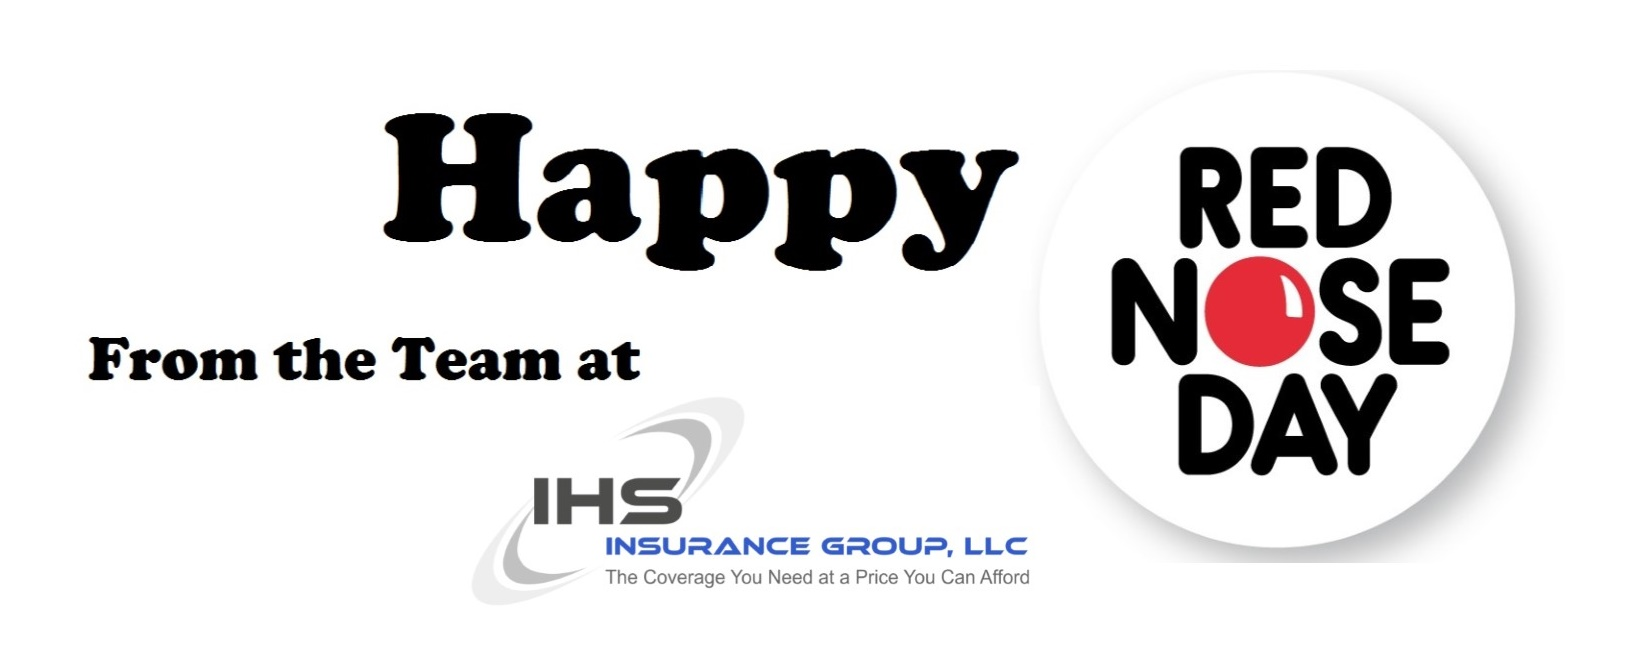 Happy Red Nose Day from IHS Insurance Group